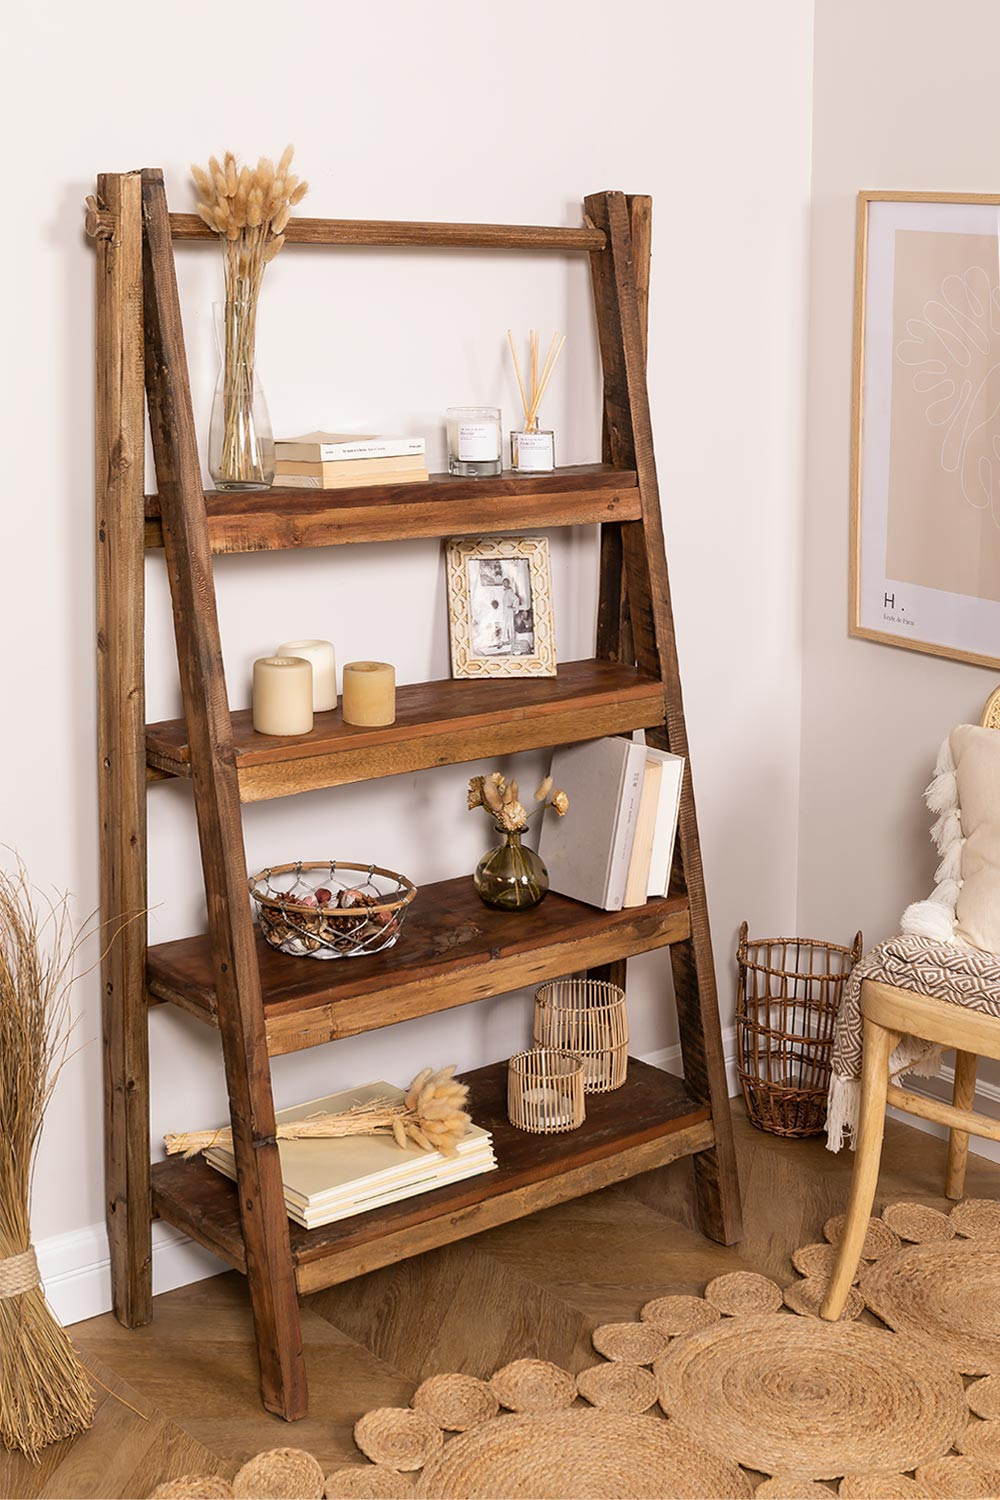 Daman Recycled Wood Shelving, gallery image 1